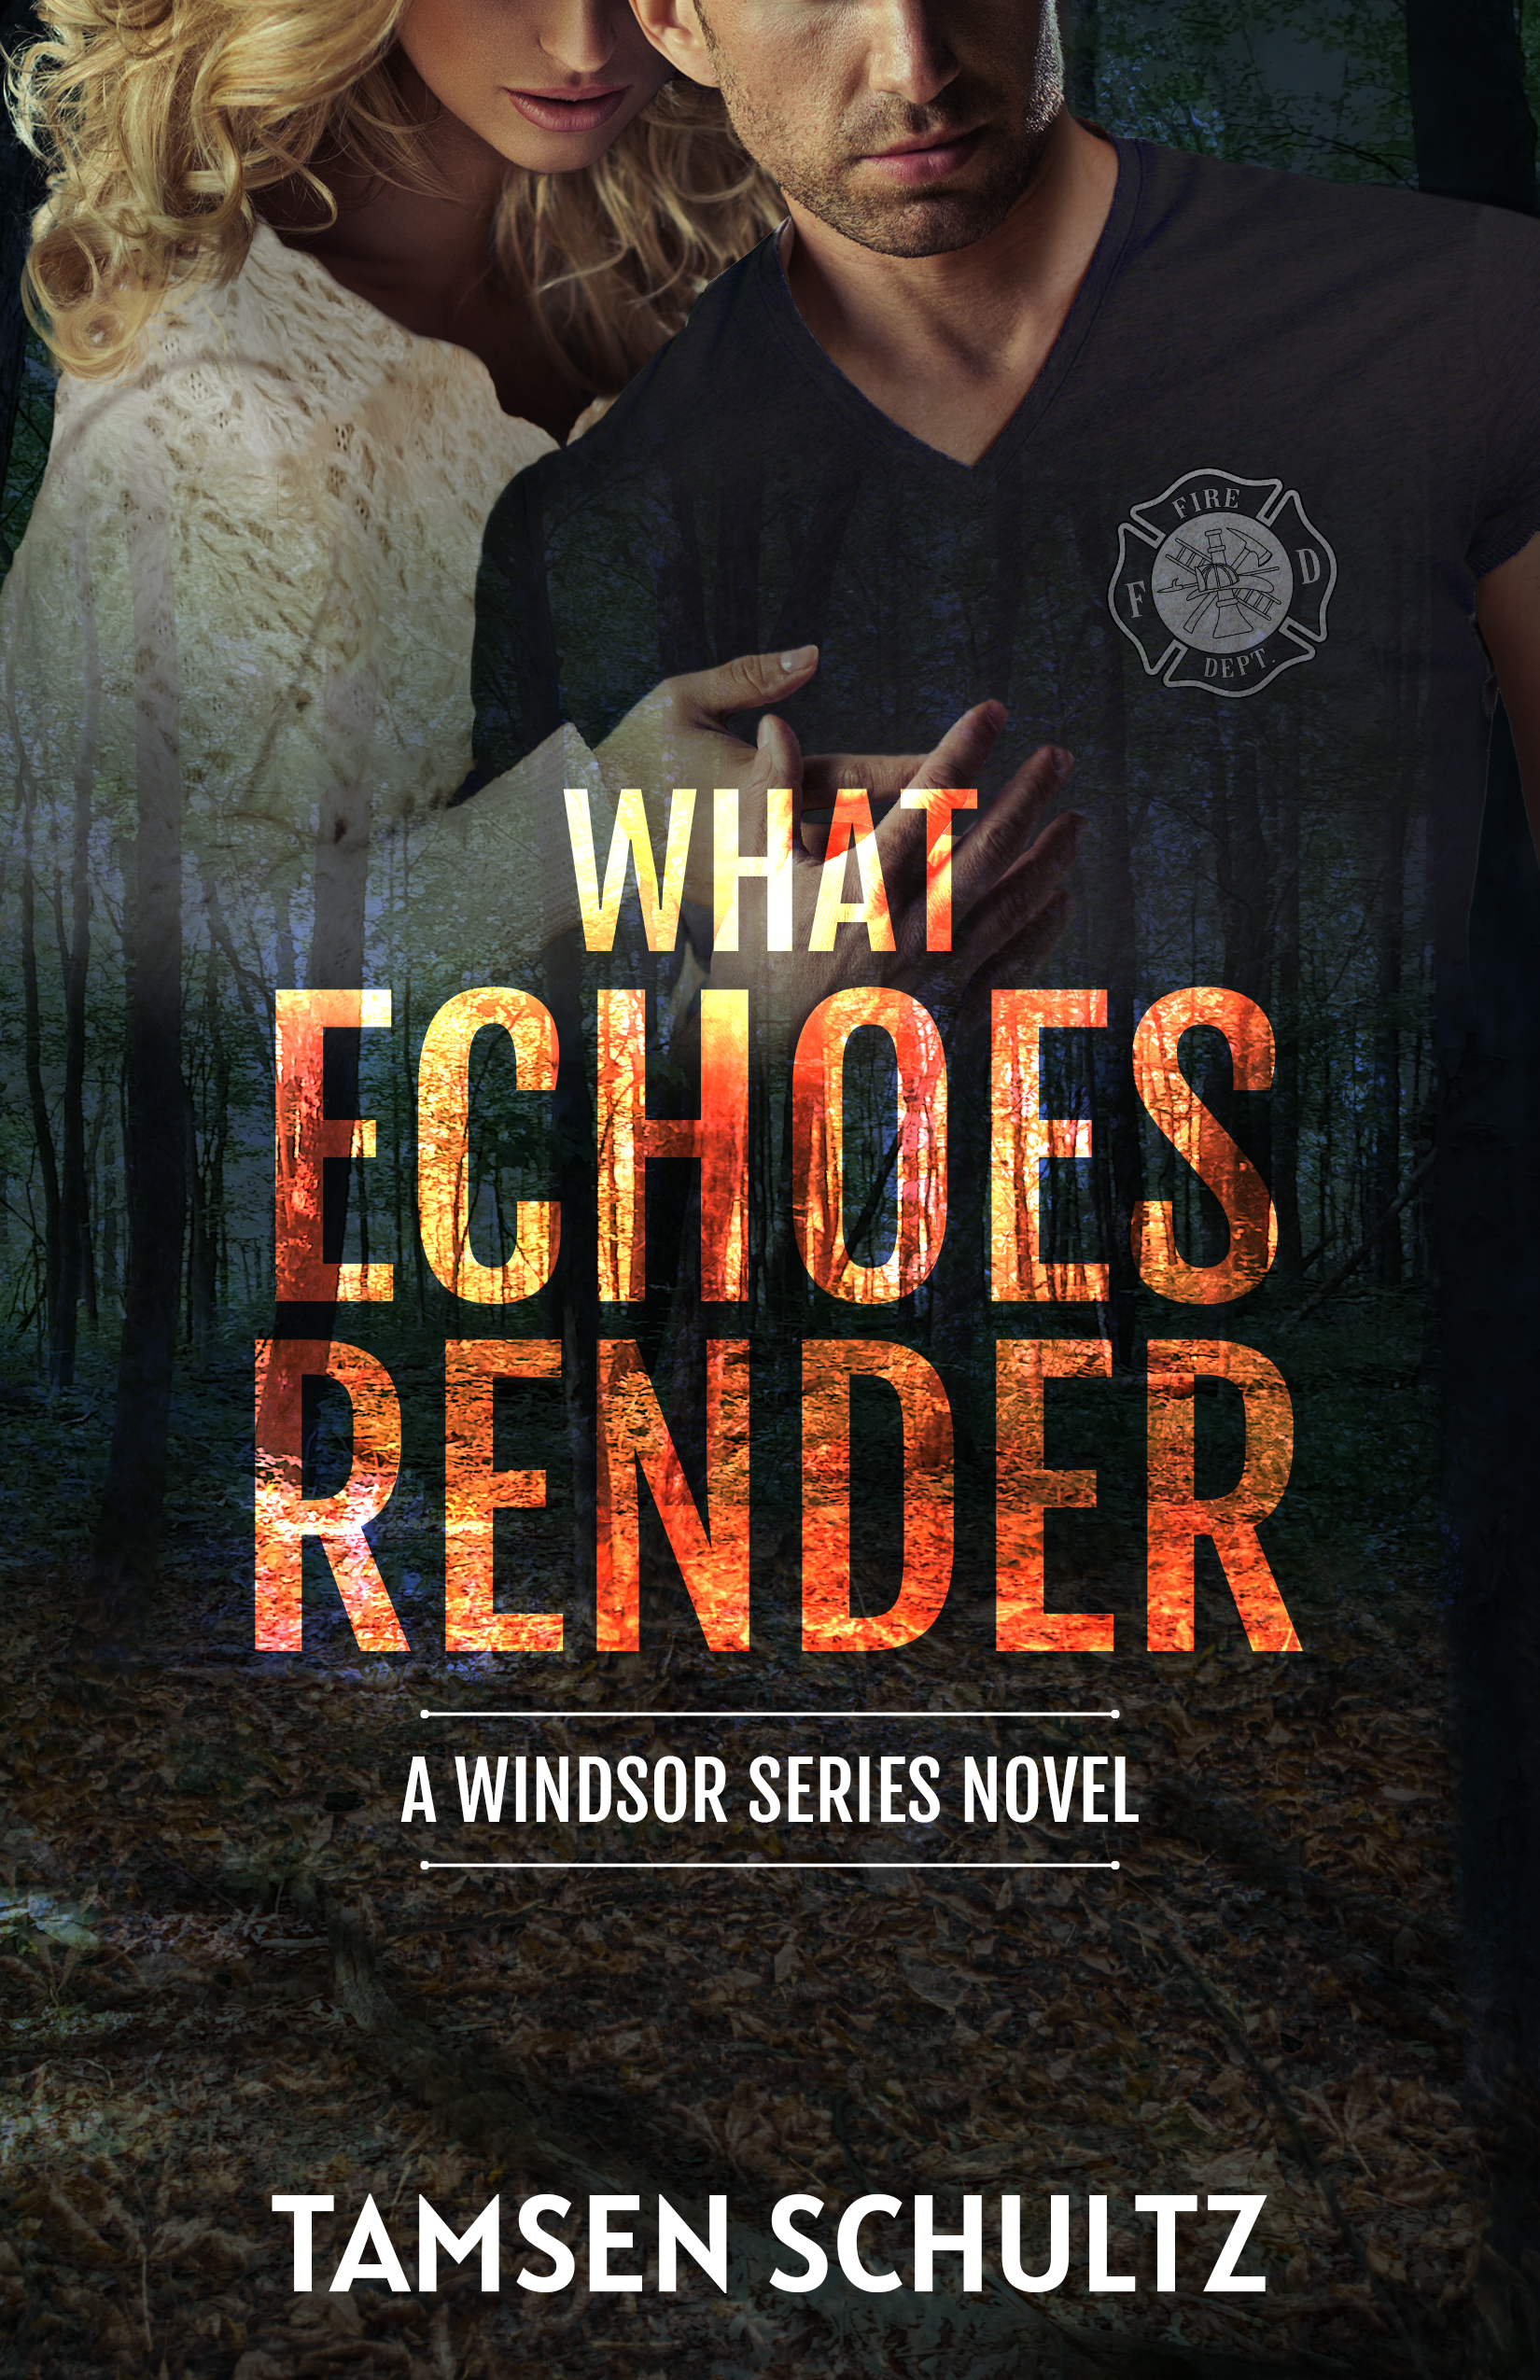 What Echoes Render (Windsor #3)